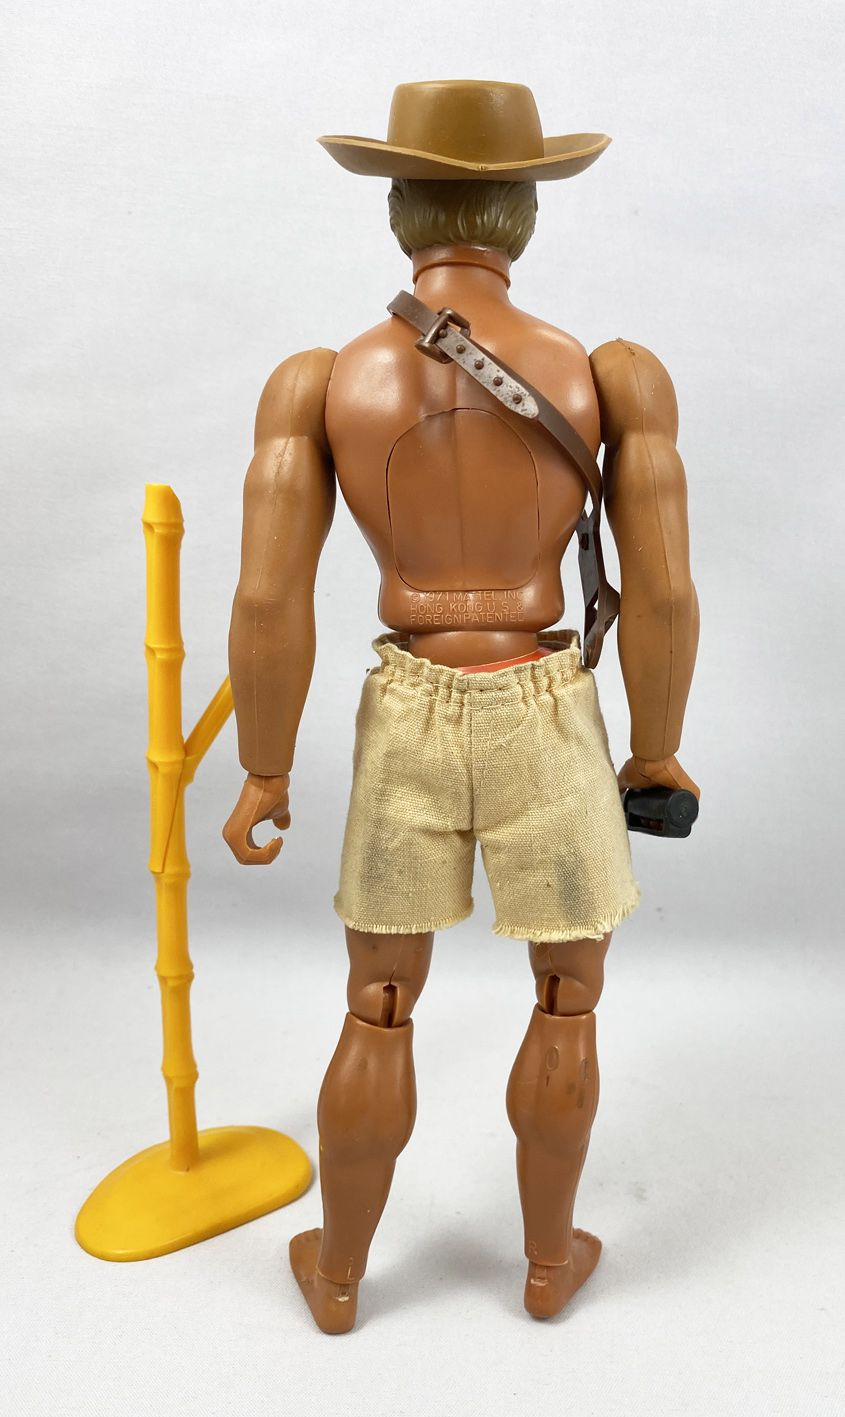 Big Jim Série Aventure - Mattel - Big Jeff (ref.9934)